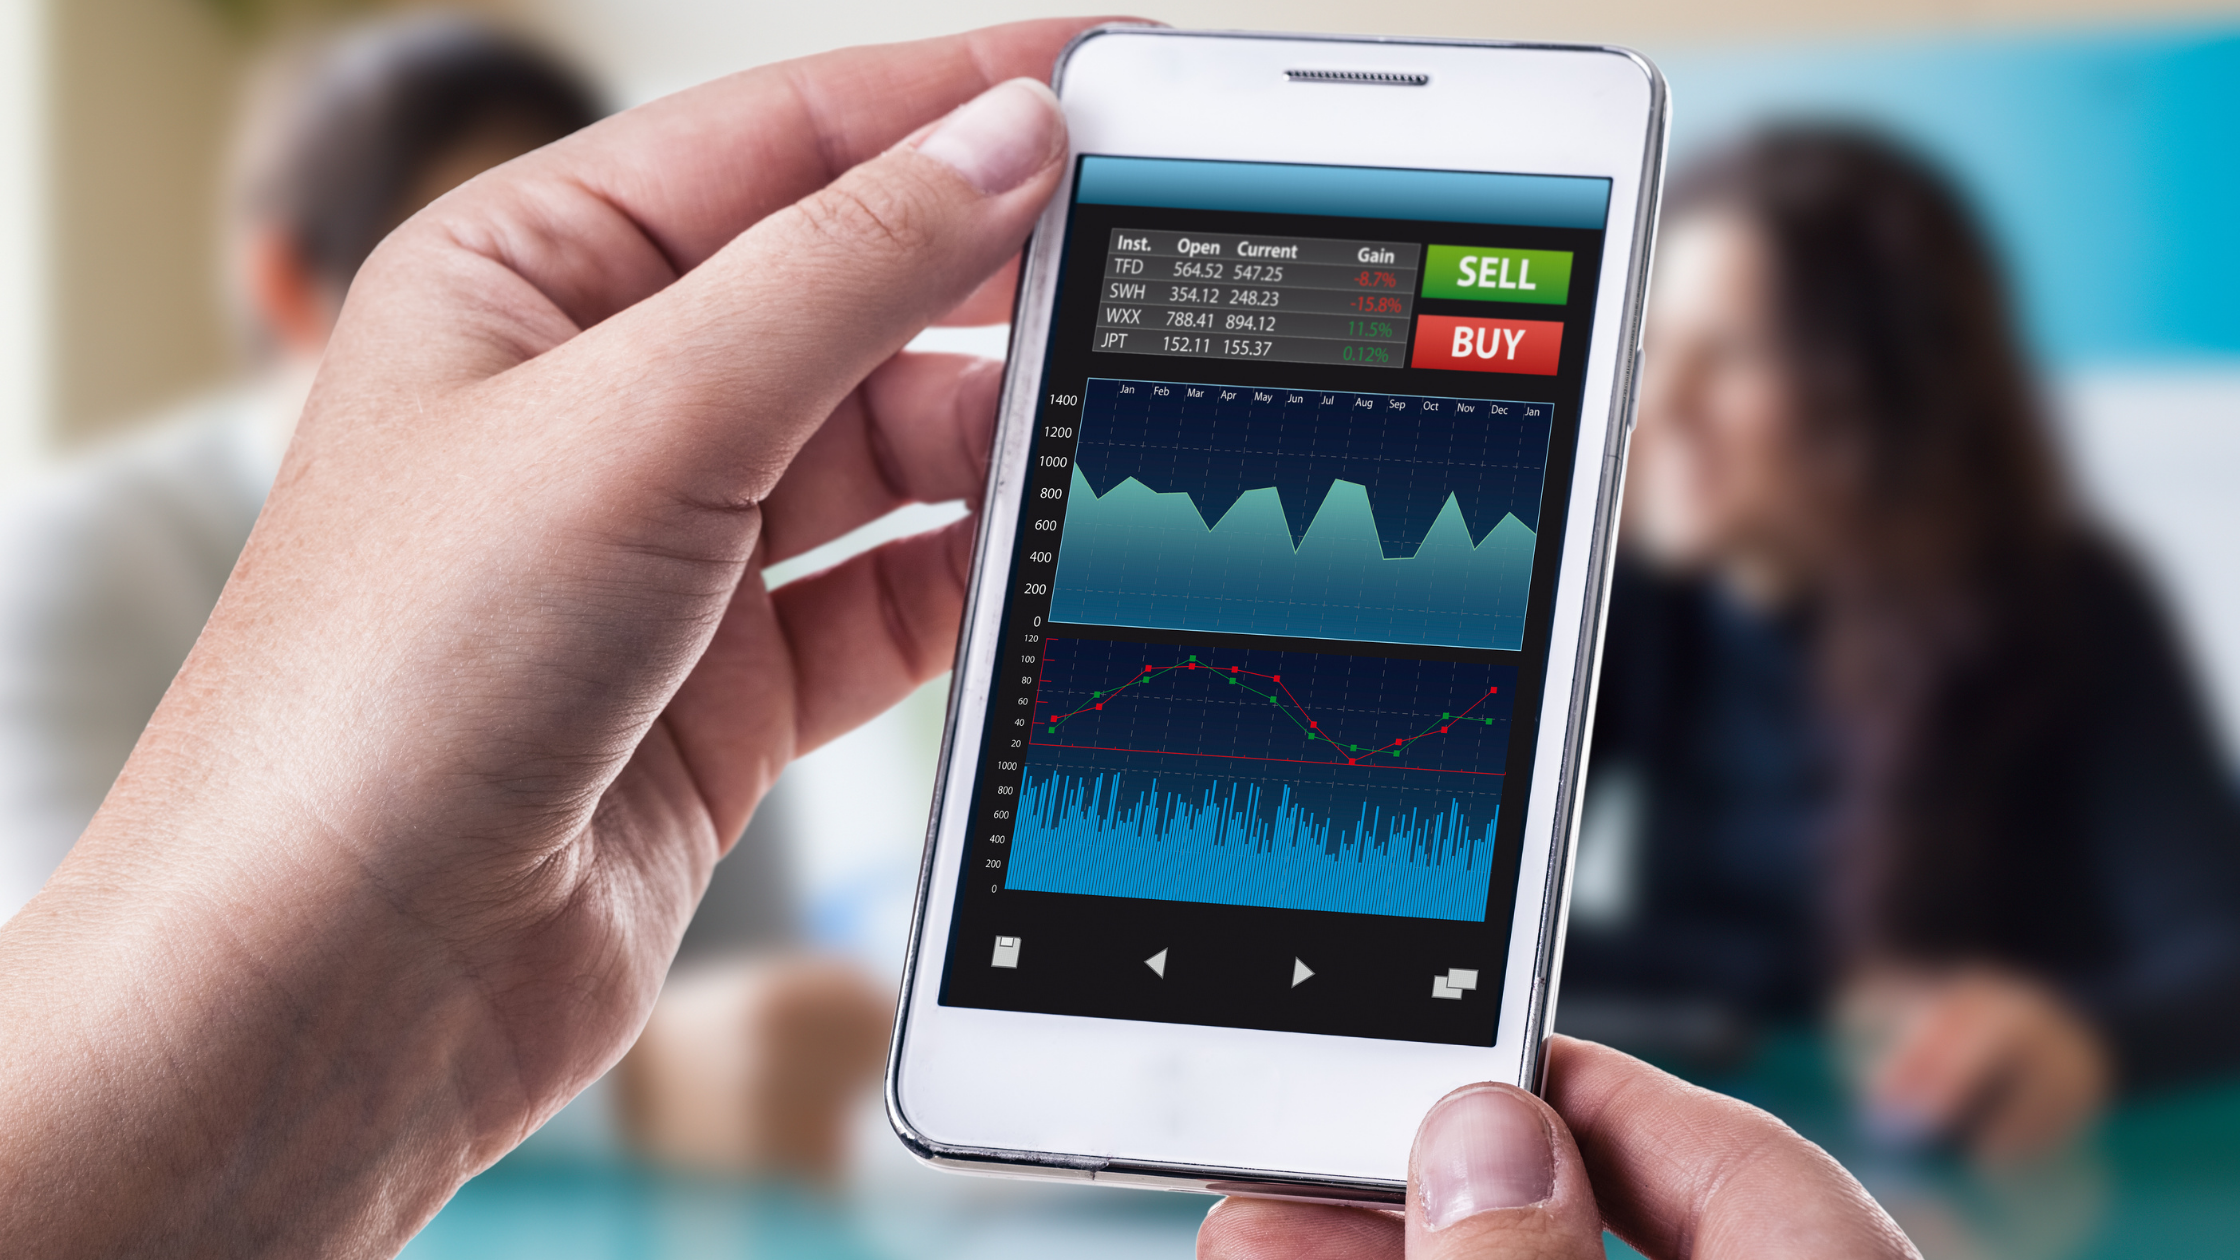 Review: The Best Investment Apps for iPhone in 2020